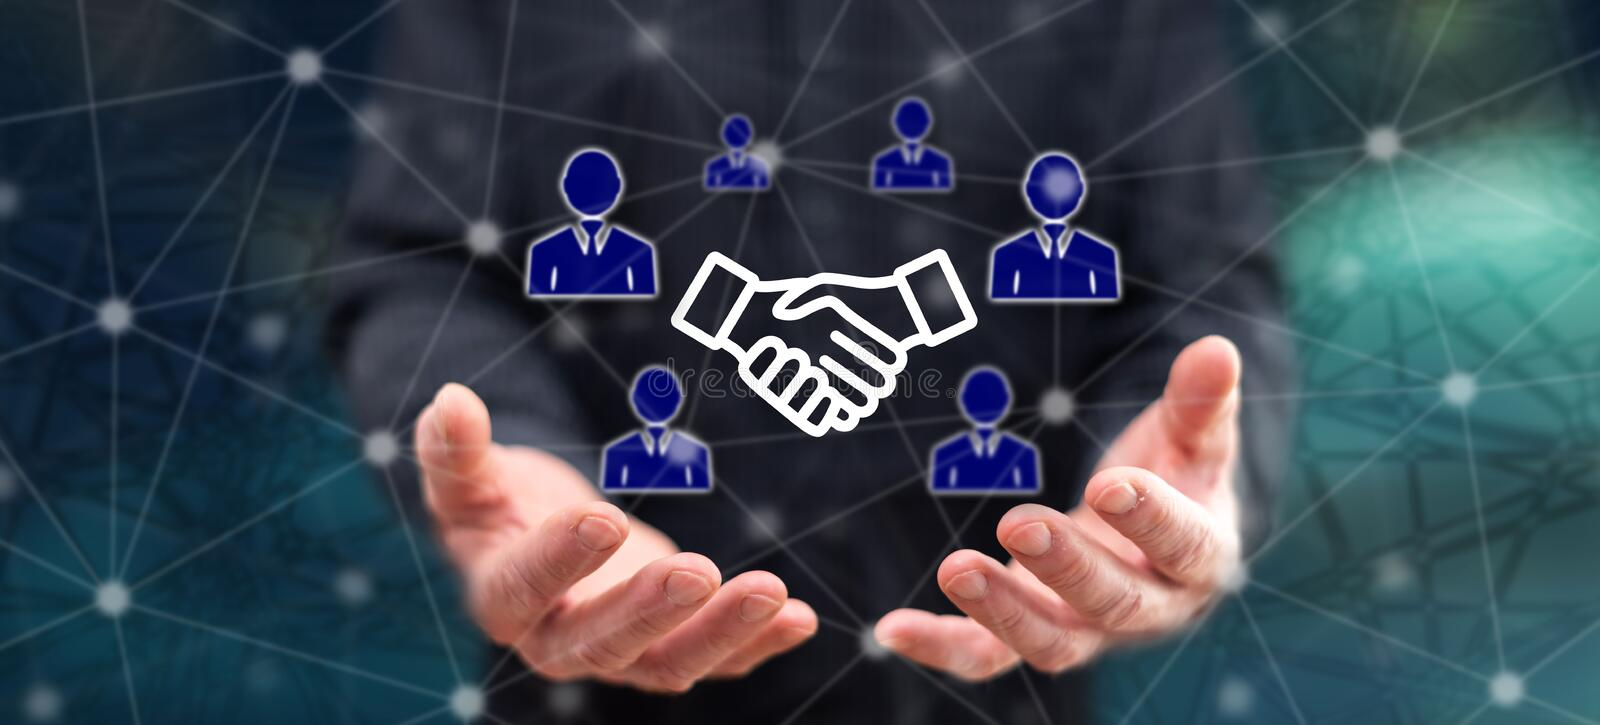 Concept of partner. Partner concept above the hands of a man in background royalty free stock images